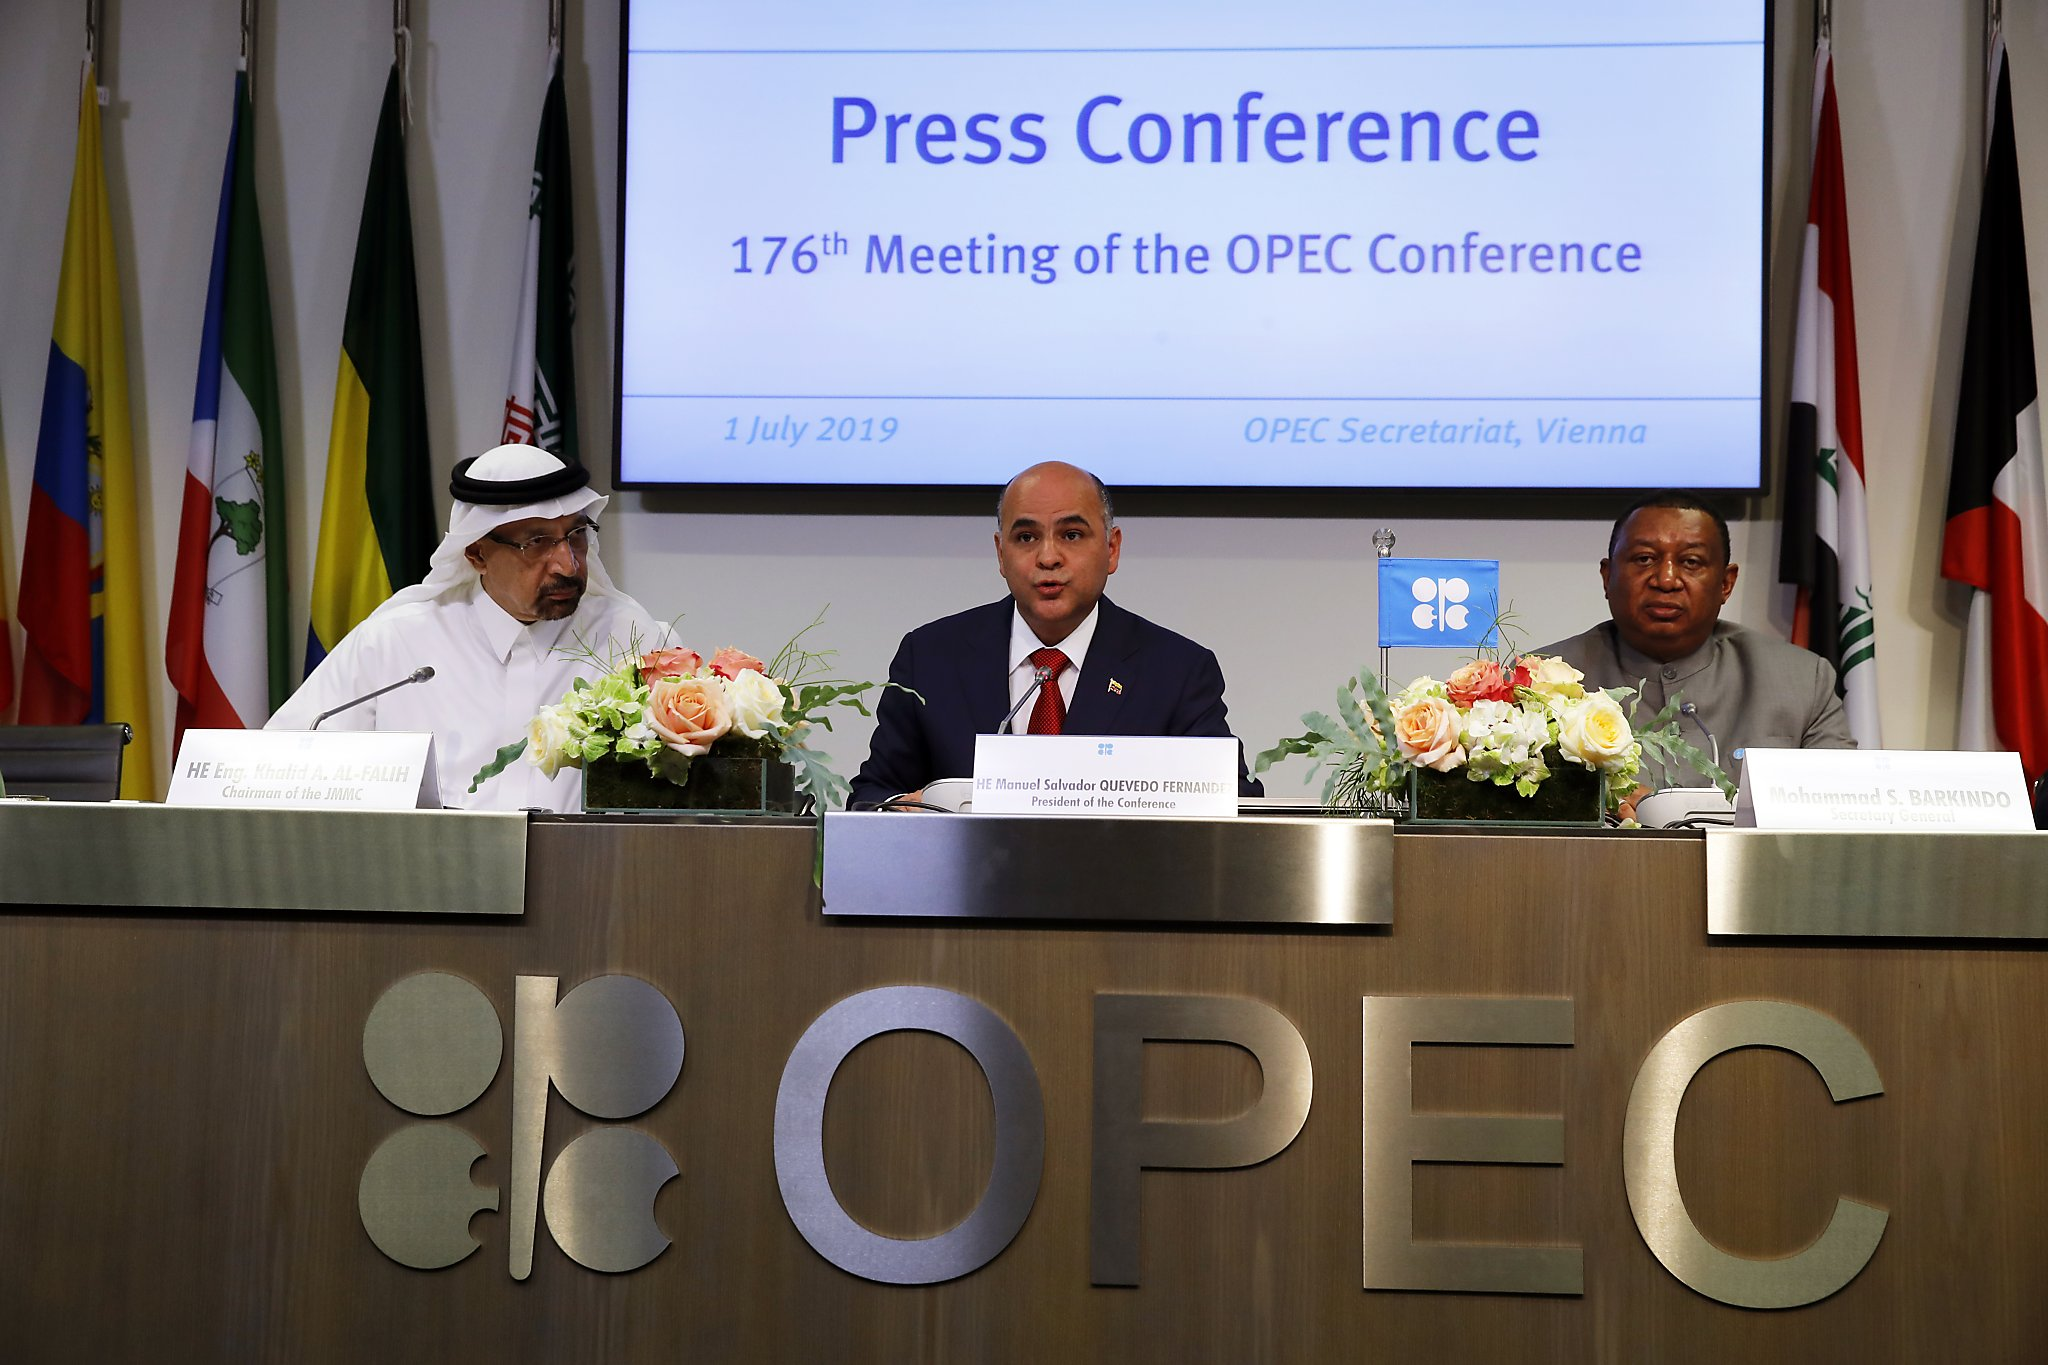 OPEC sees 'somewhat bearish' oil outlook even as market tightens